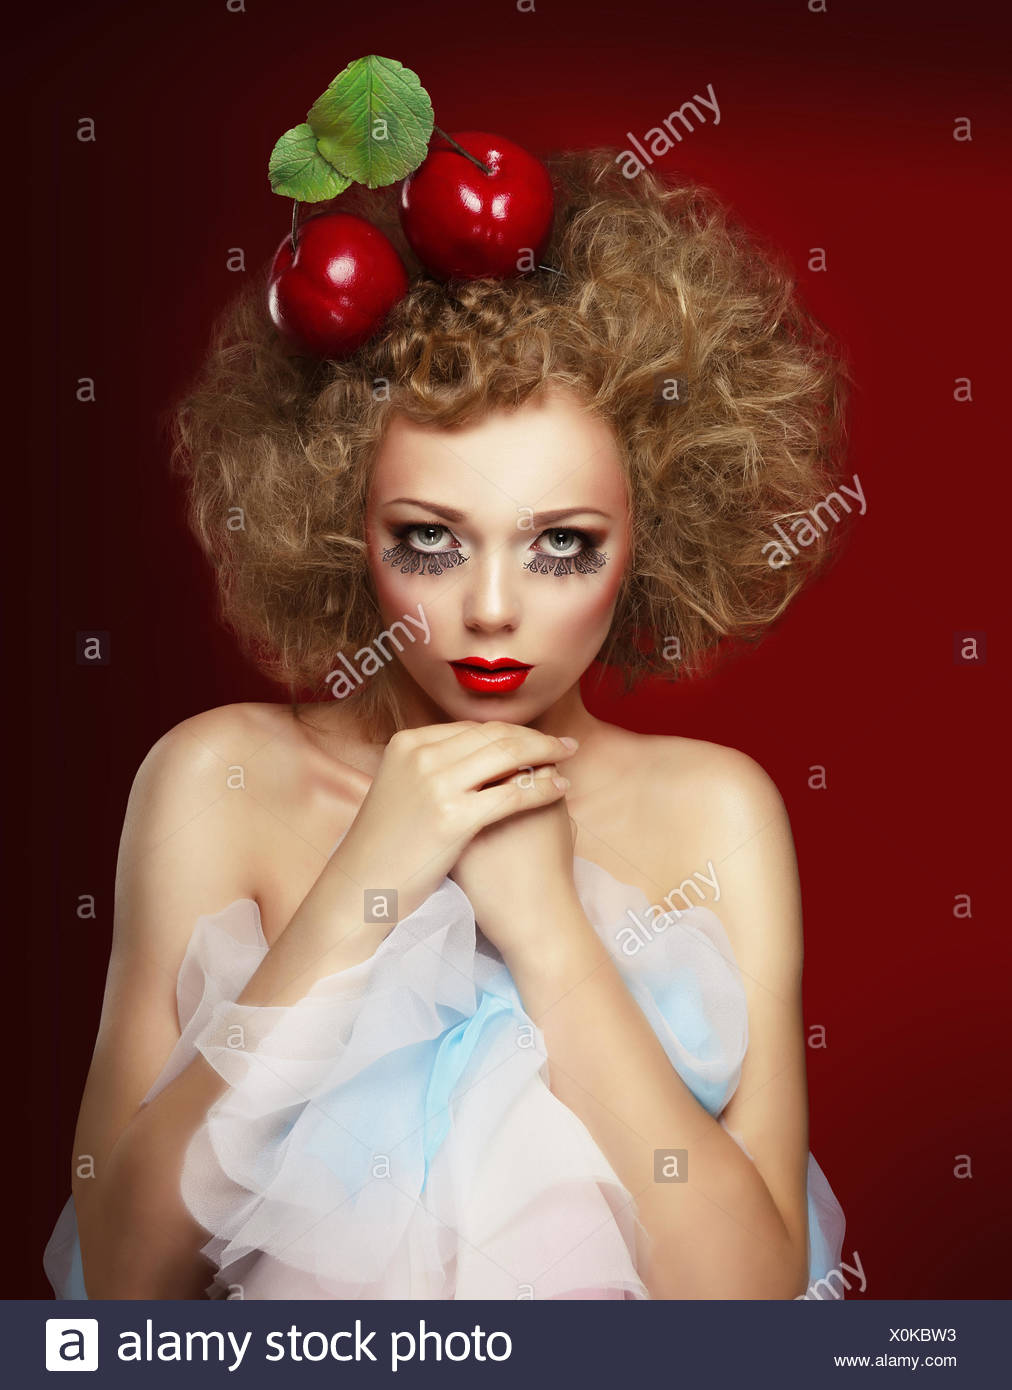 Doll woman with cherries. Stock Photo